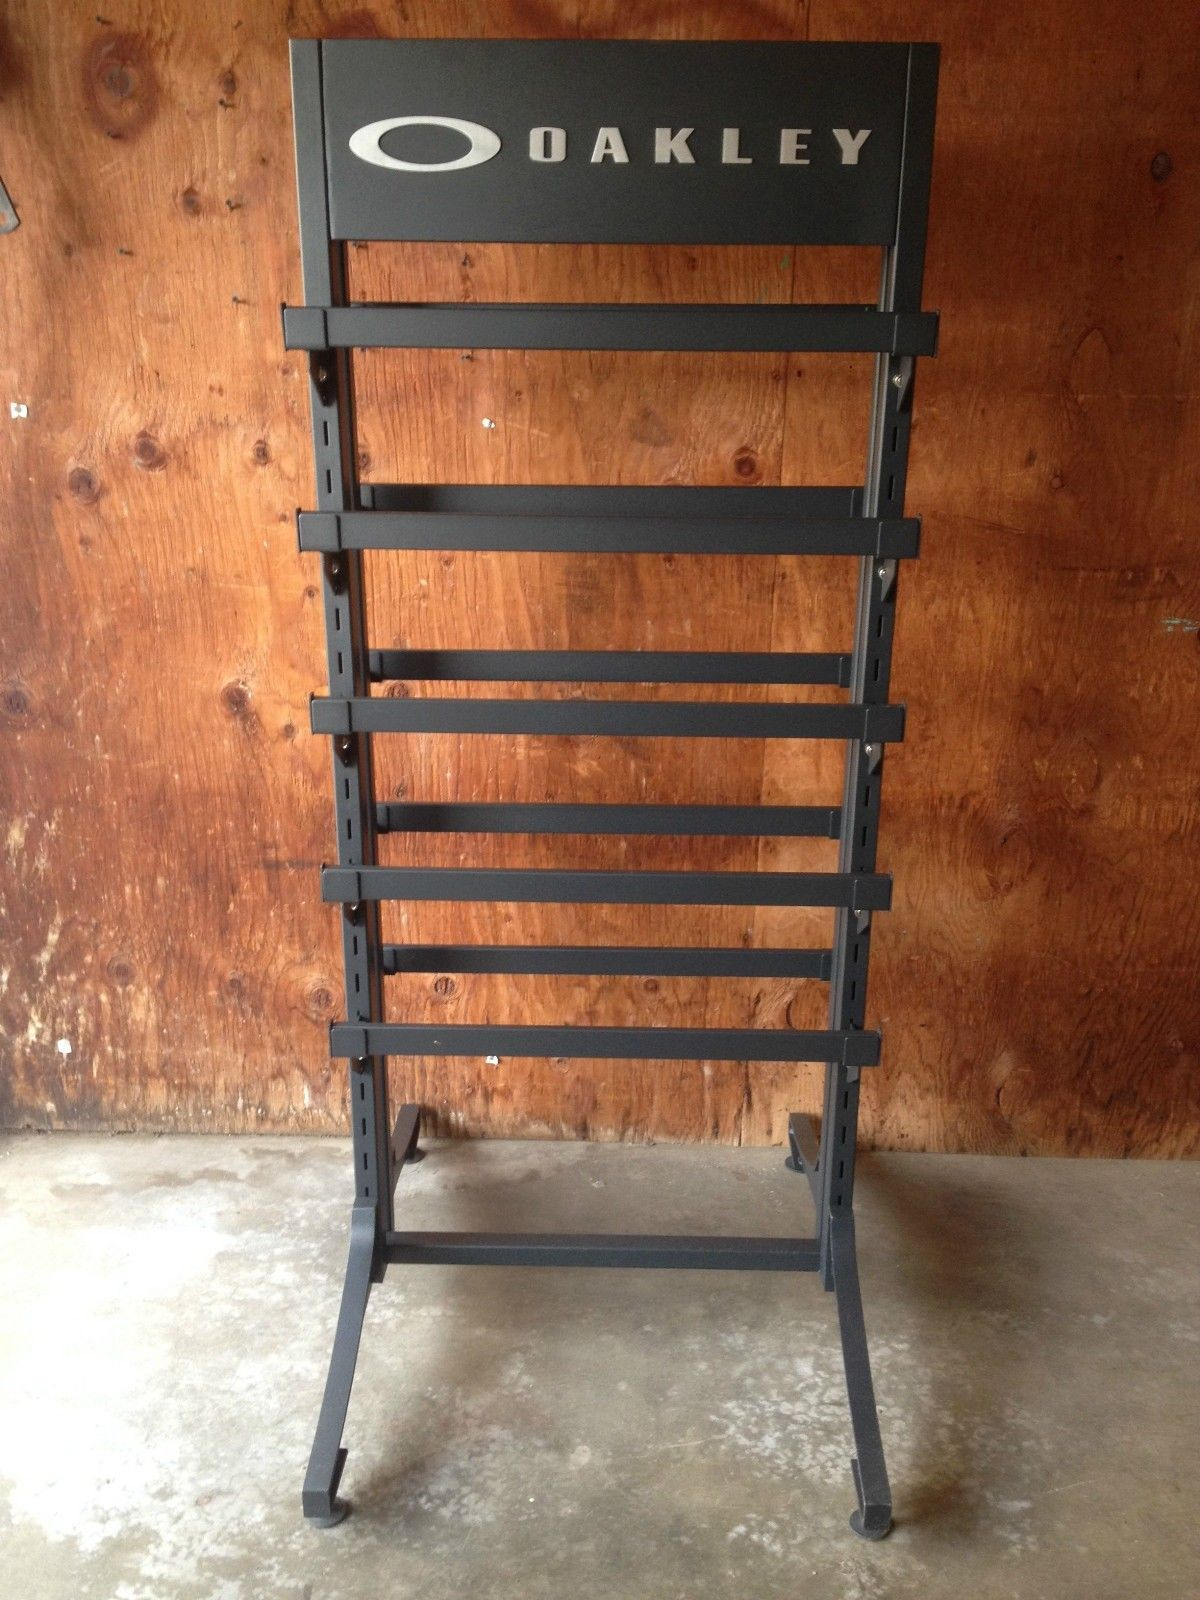 Oakley cooler and Accessory rack (SWFL) - O accy rack 2.jpg